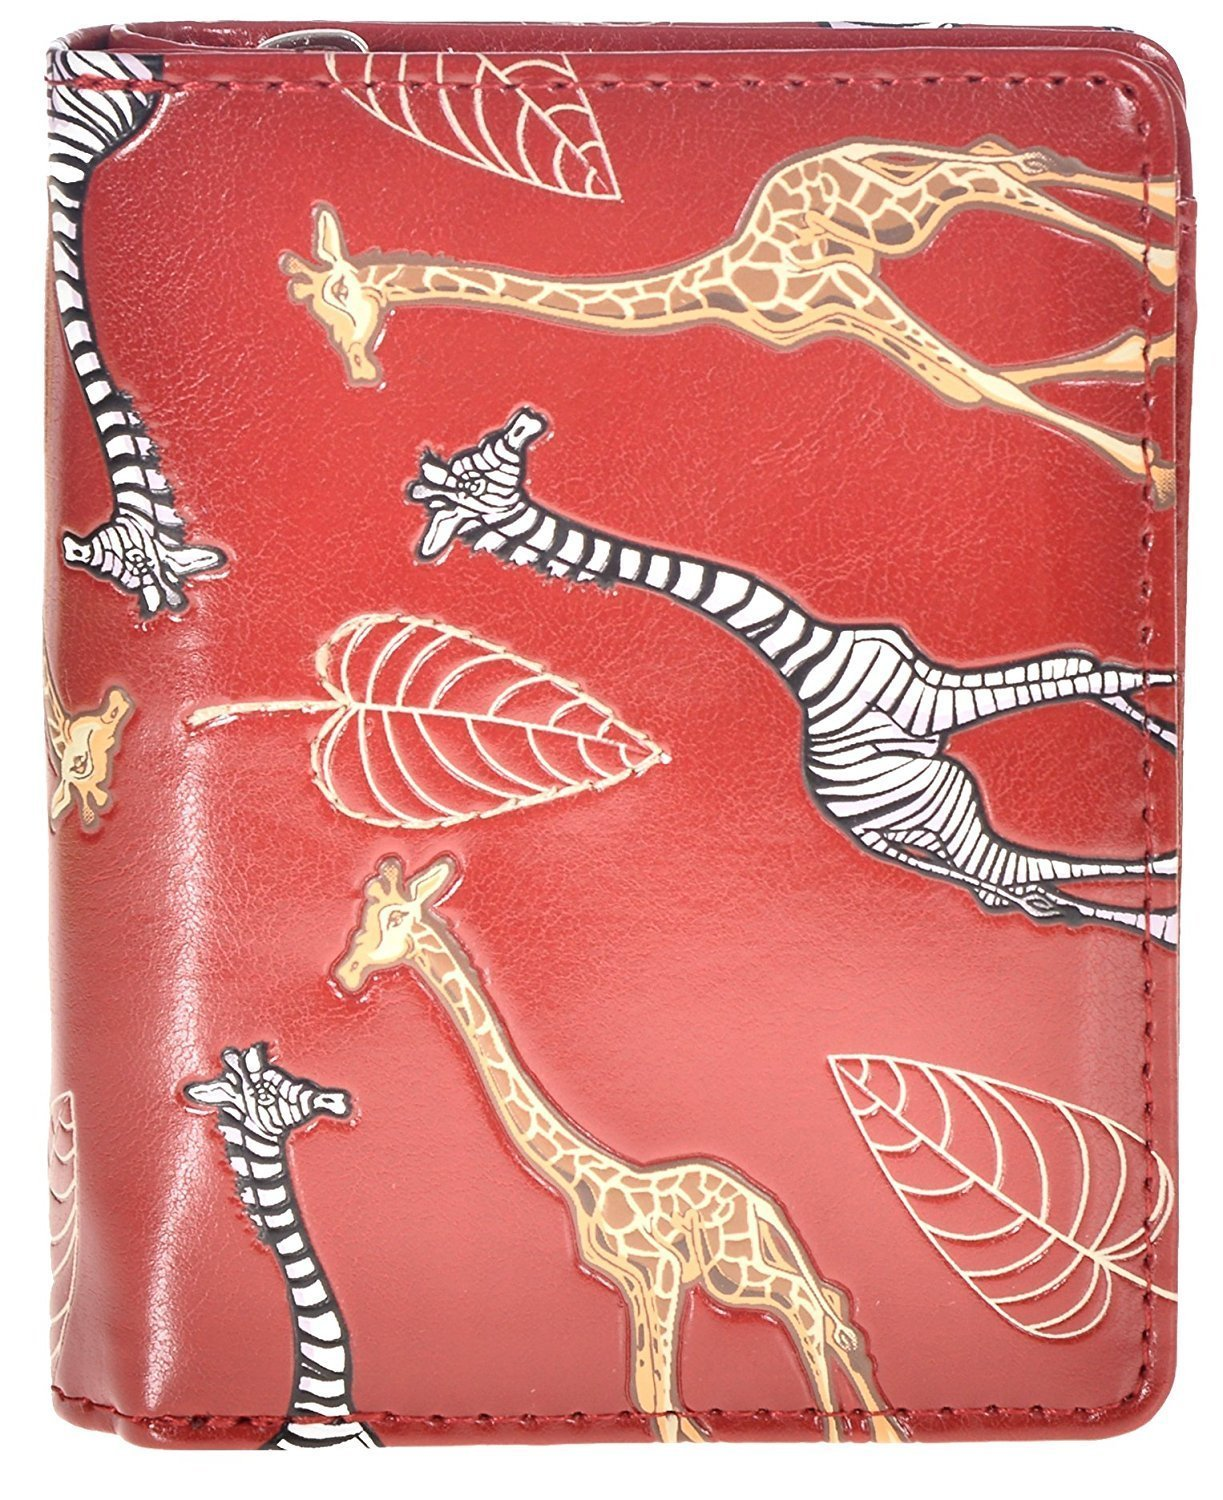 Shag Wear Women's Animal Design Small Zipper Wallet Giraffe Love Red by Shag Wear (Image #1)